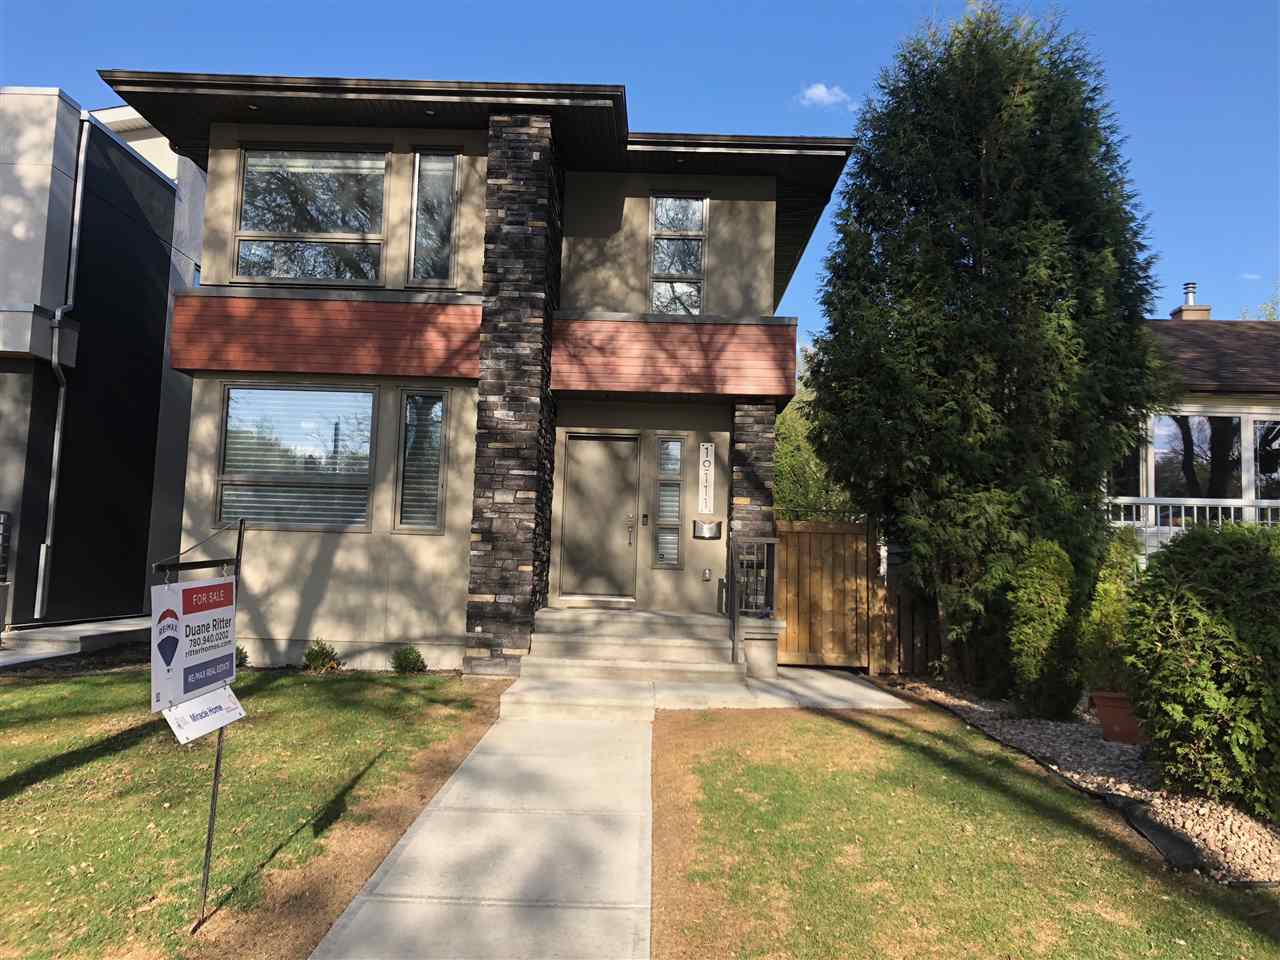 10111 83 Street NW, 4 bed, 3.1 bath, at $780,000